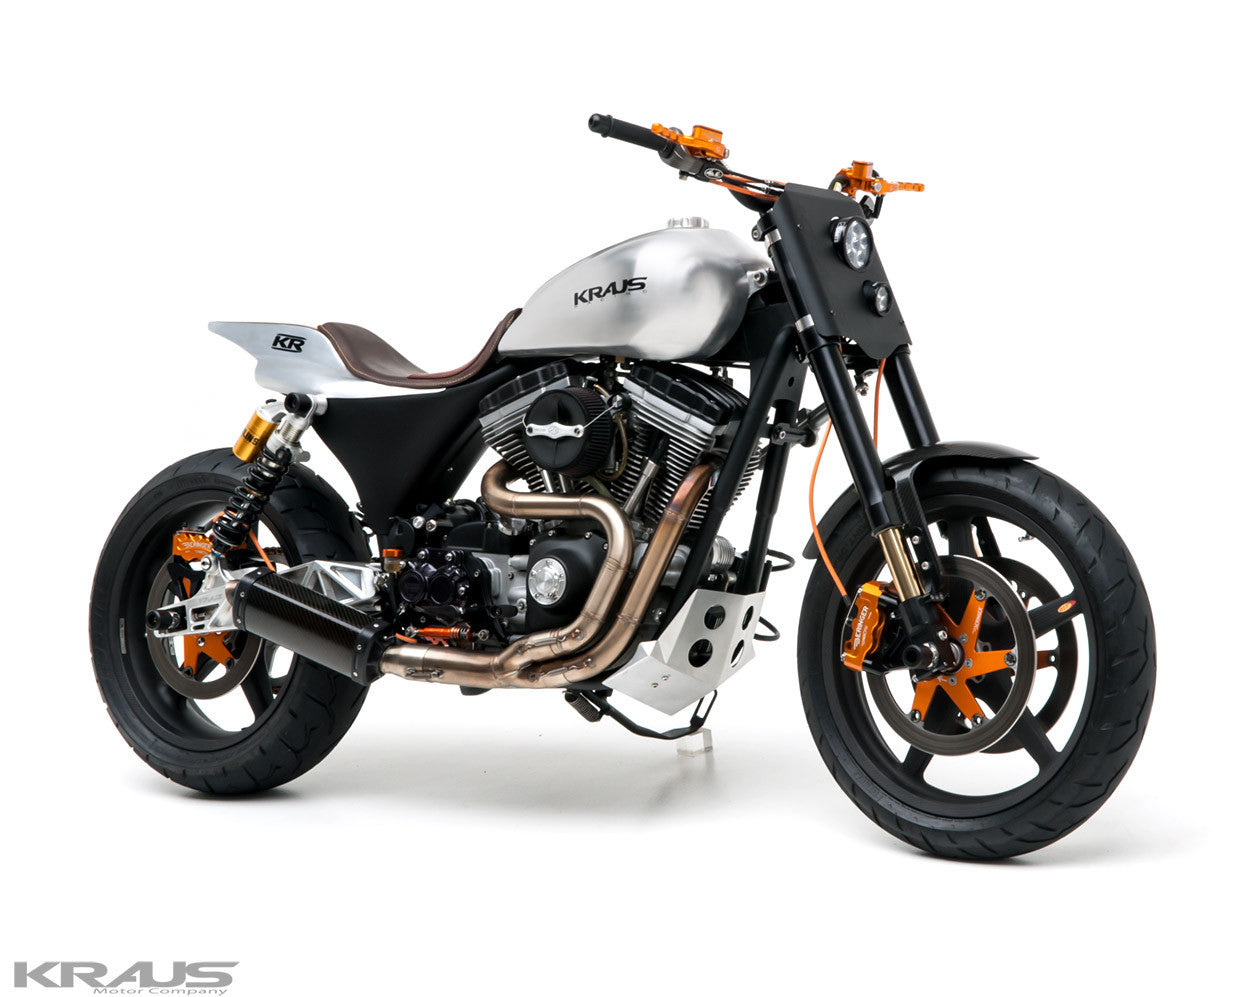 Custom Harley Davidson Dyna By Kraus: American Performance Motorcycle Parts